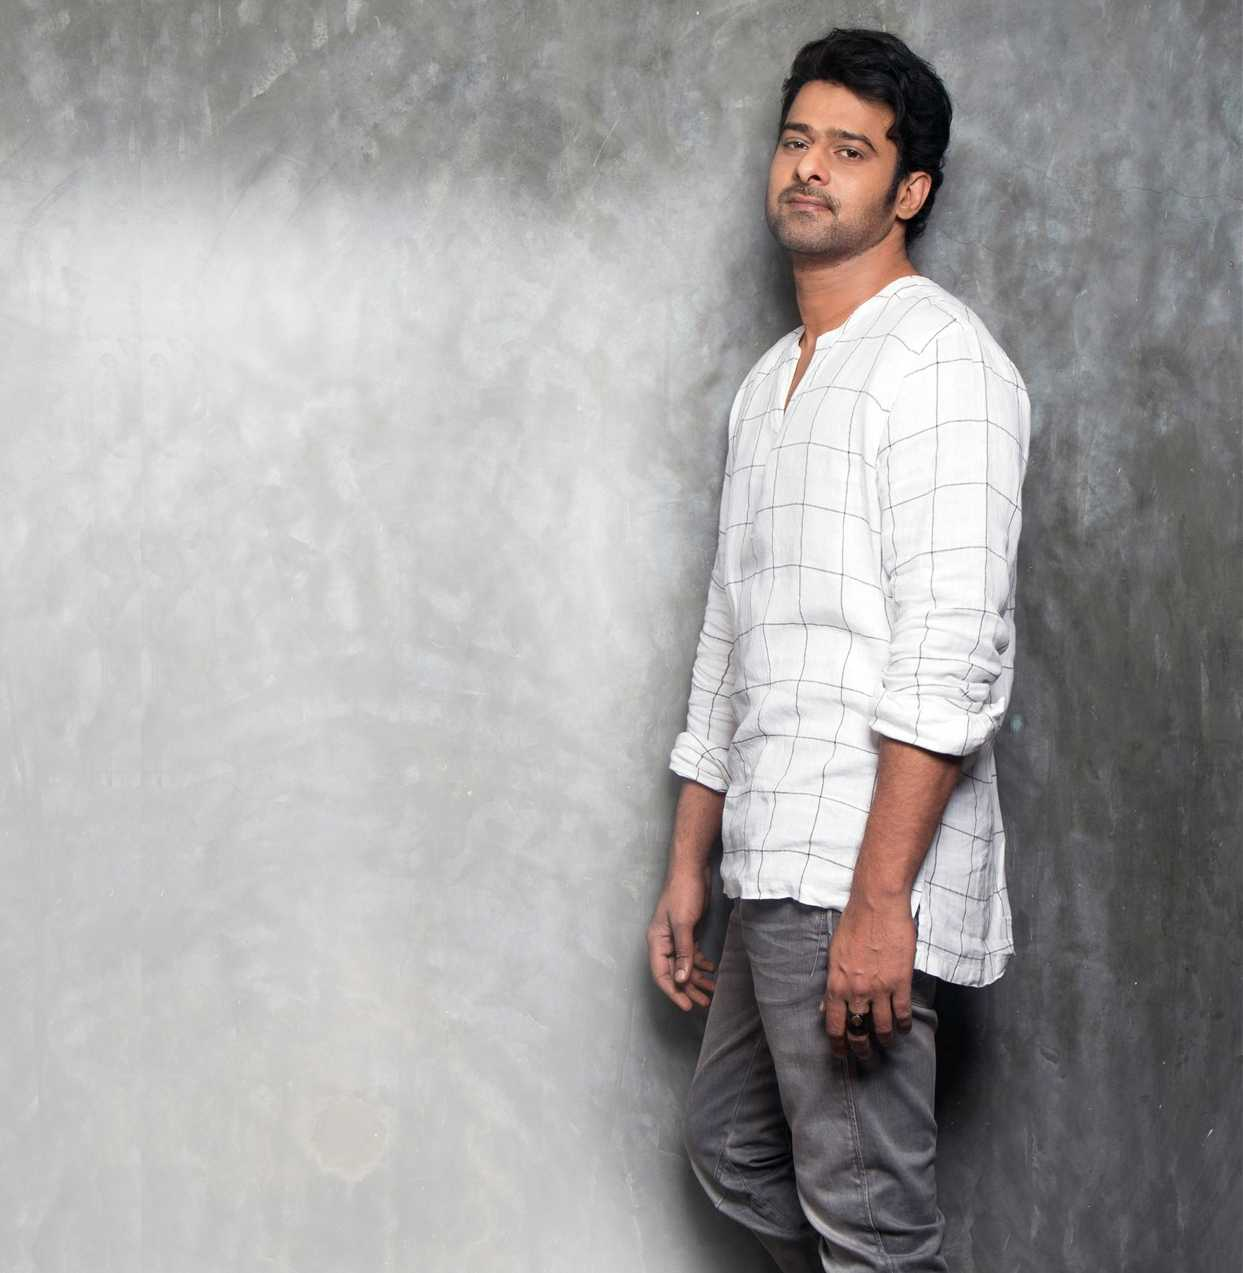 Prabhas Early Life